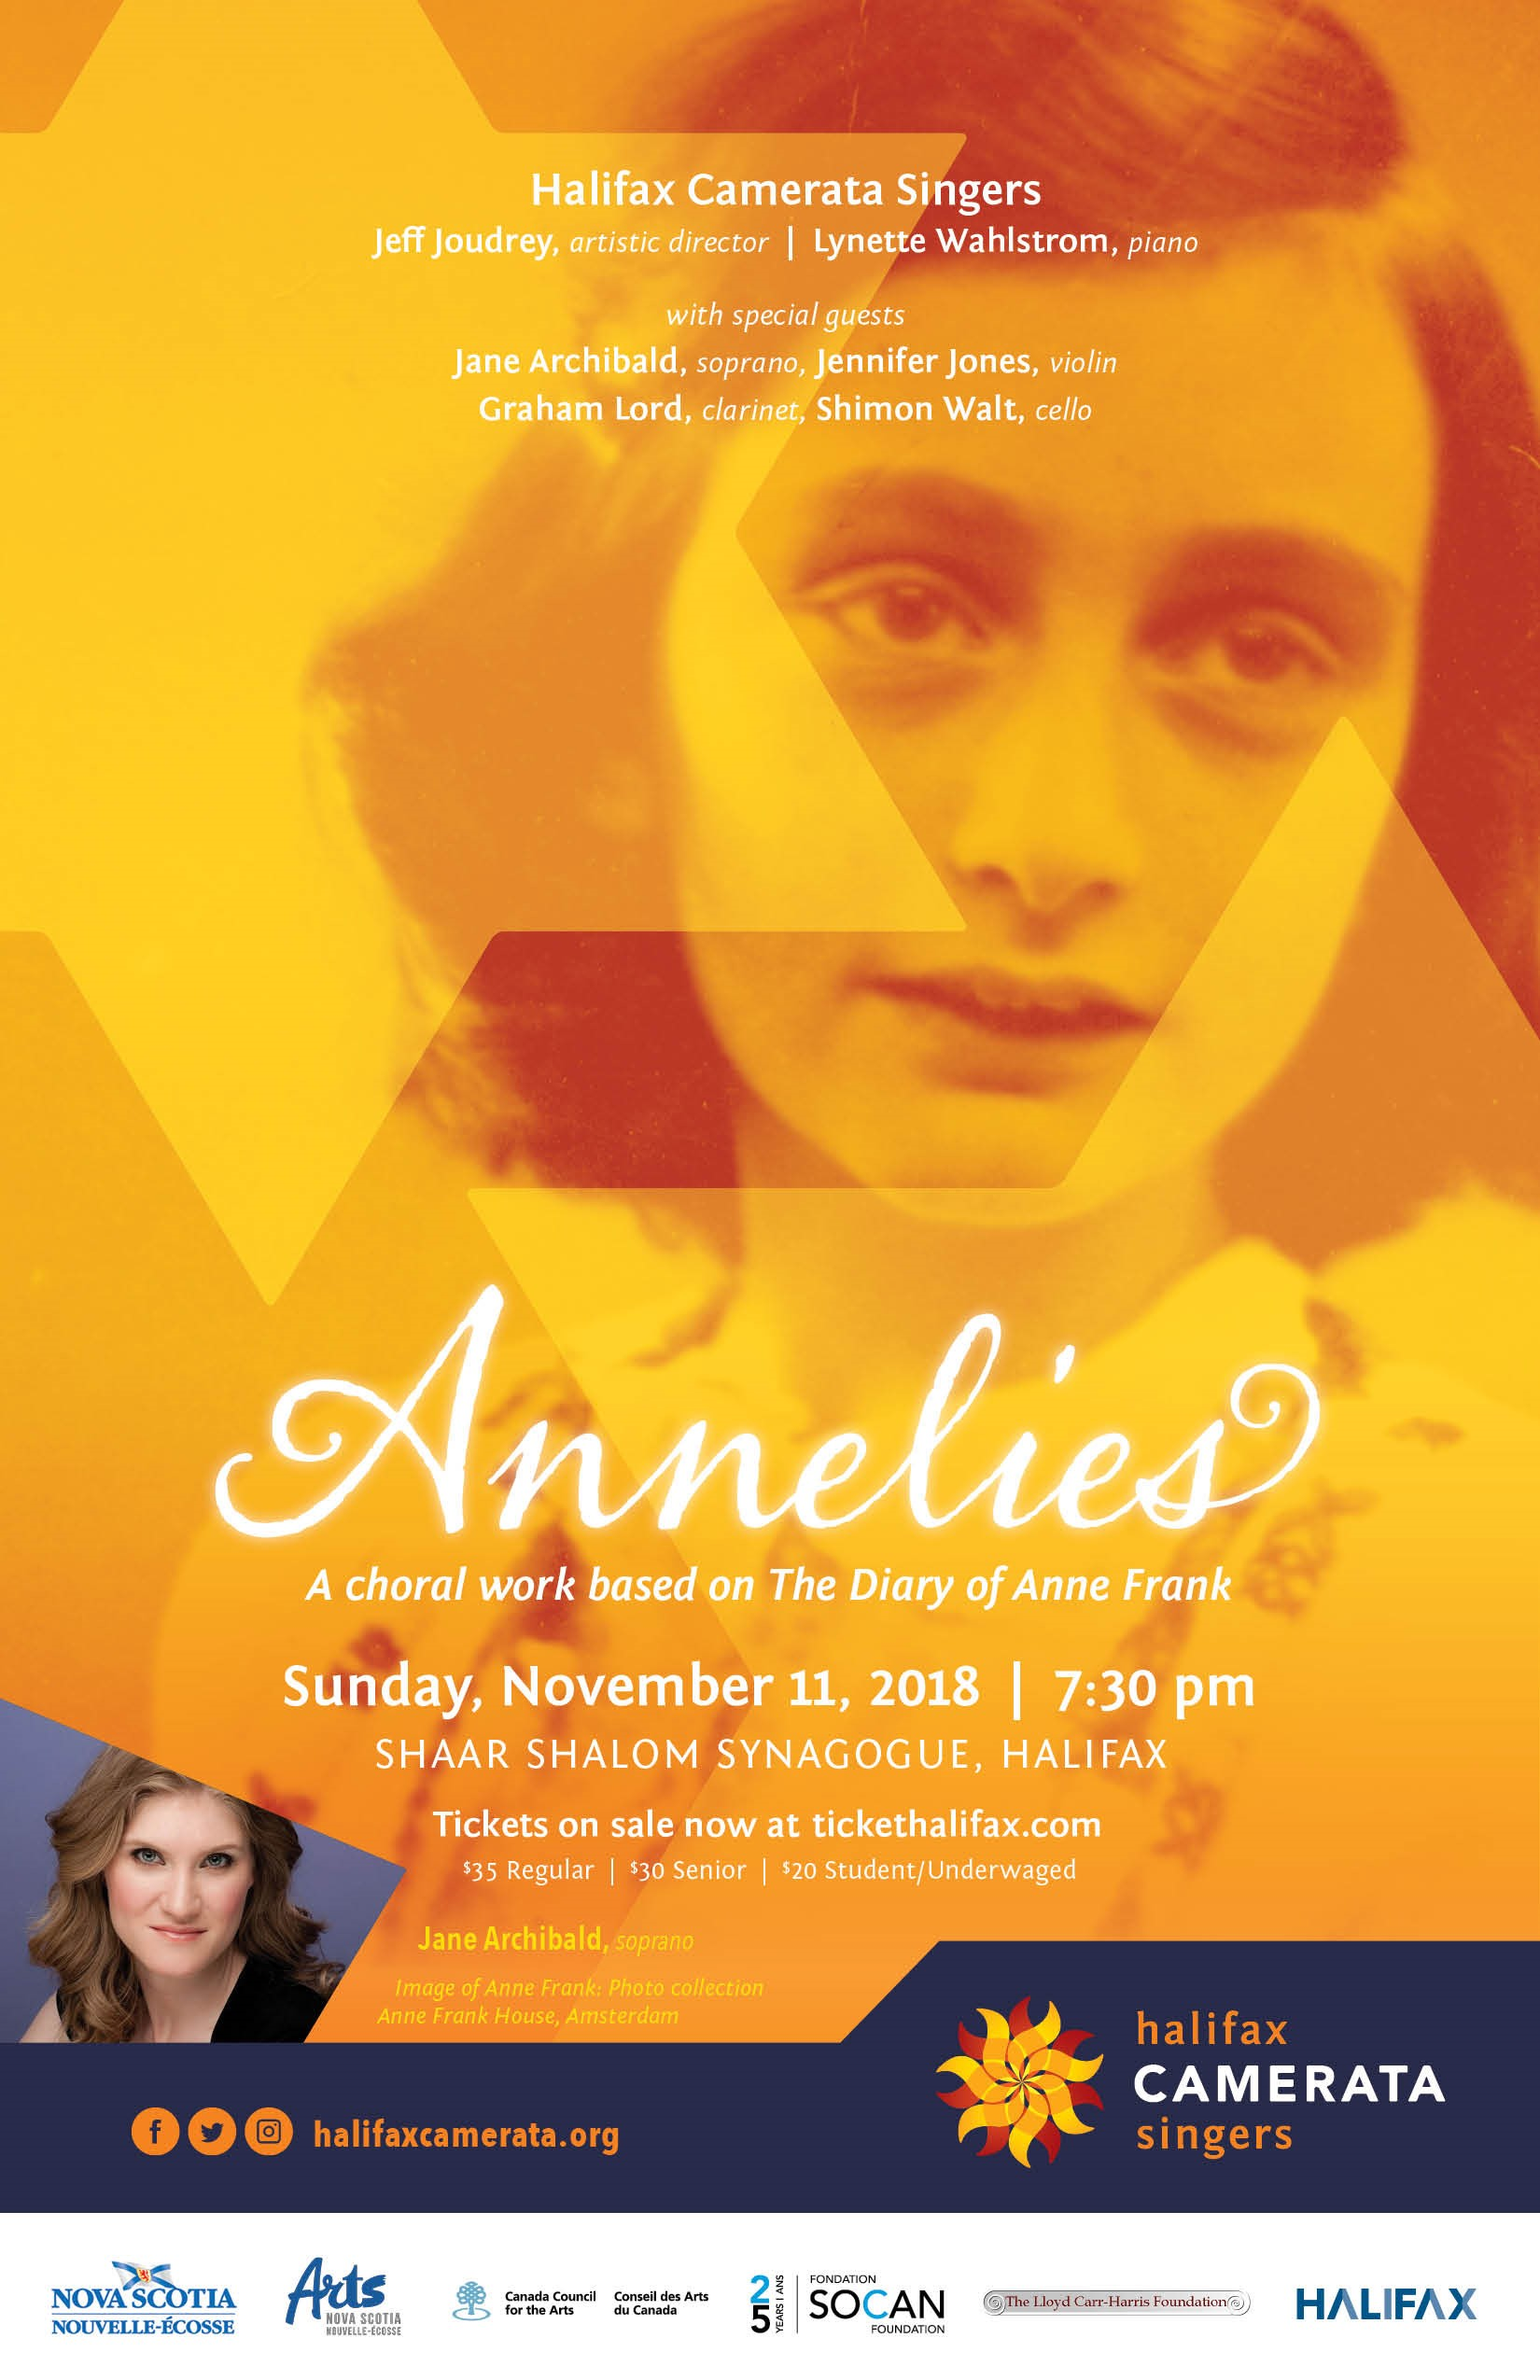 Annelies - A Choral work based on the Diary of Anne Frank with Jane Archibald